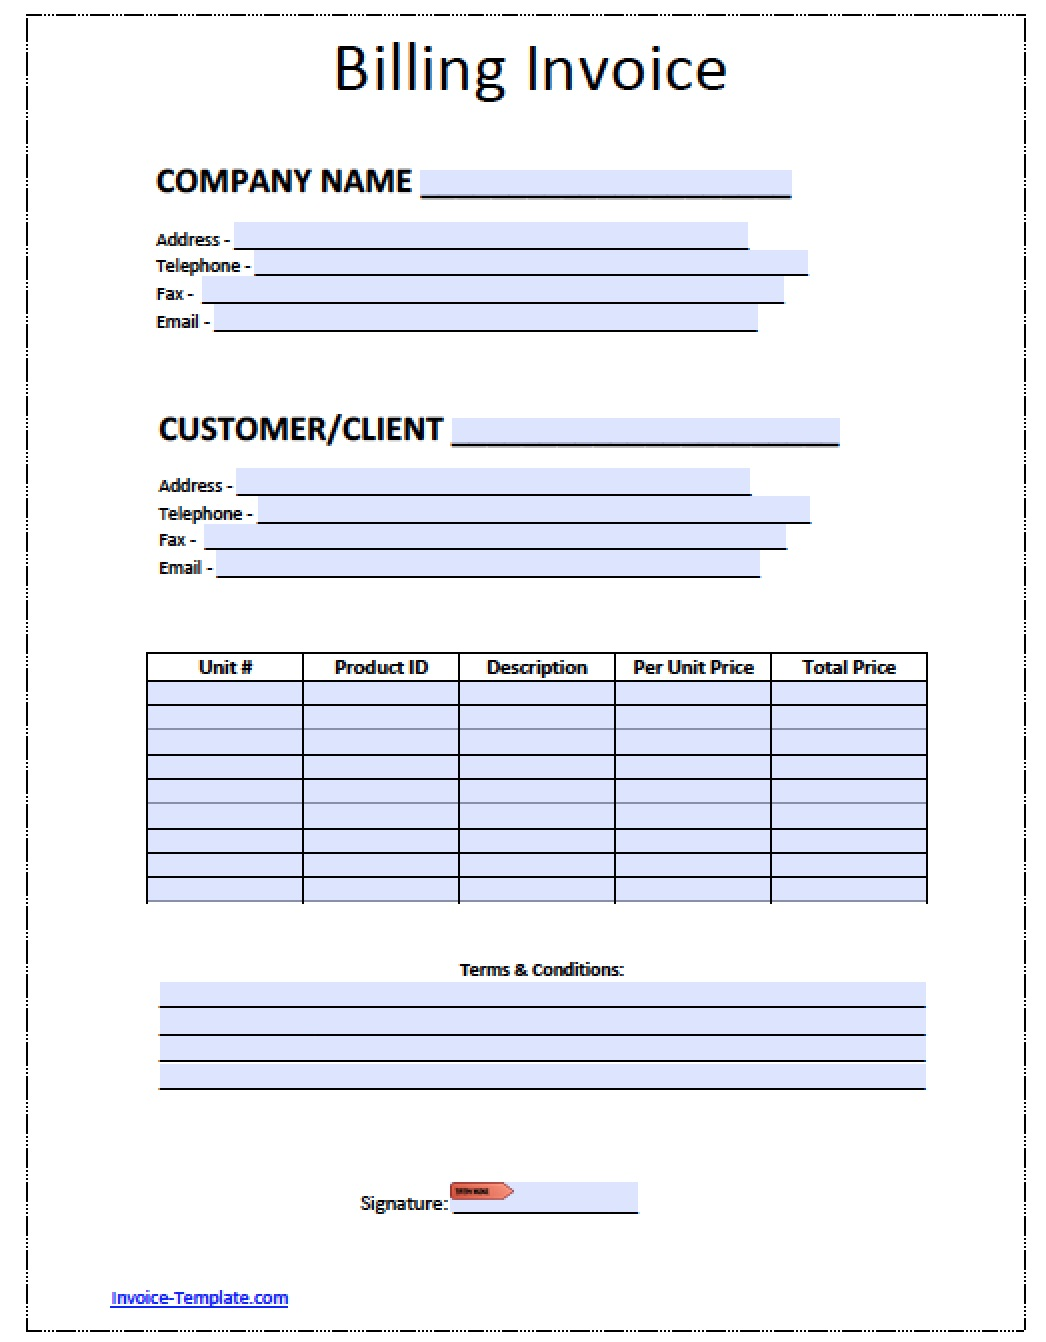 Aaaaeroincus  Winsome Billing Invoice Invoices Faq U Cloudflare Support Billing  With Lovely Free Billing Invoice Template  Excel  Pdf  Word Doc  Billing With Cool Sample Plumbing Invoice Also Simple Invoice Templates In Addition Sample Invoice For Services Rendered Template And Invoice Estimate As Well As Business Invoices Printing Additionally Car Repair Invoice Template From Happytomco With Aaaaeroincus  Lovely Billing Invoice Invoices Faq U Cloudflare Support Billing  With Cool Free Billing Invoice Template  Excel  Pdf  Word Doc  Billing And Winsome Sample Plumbing Invoice Also Simple Invoice Templates In Addition Sample Invoice For Services Rendered Template From Happytomco